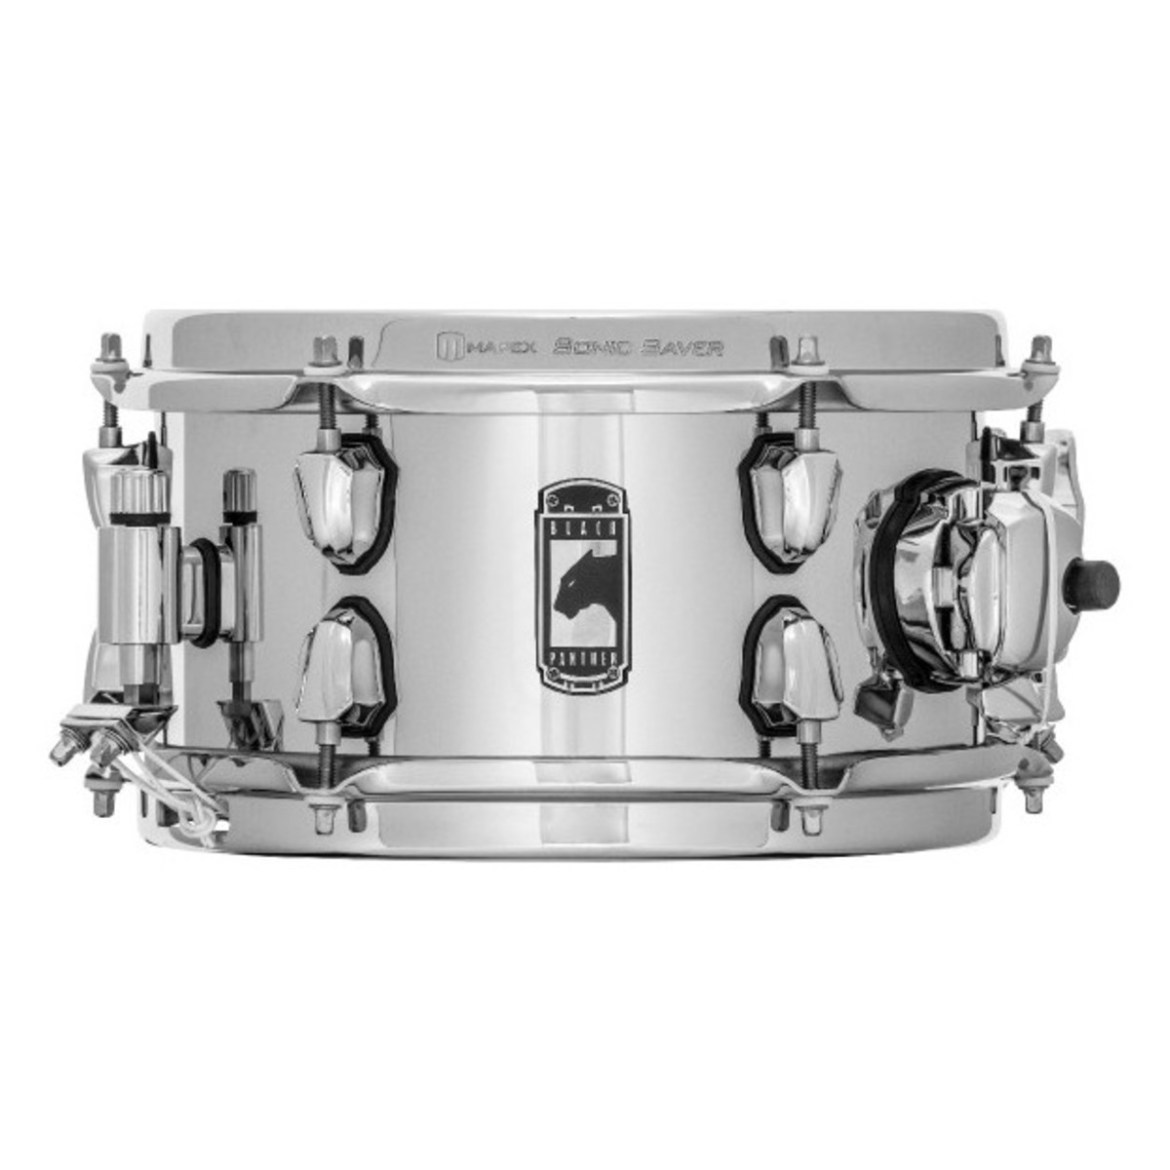 Mapex Black Panther The Stinger 10 x 5.5 Steel Snare Drum